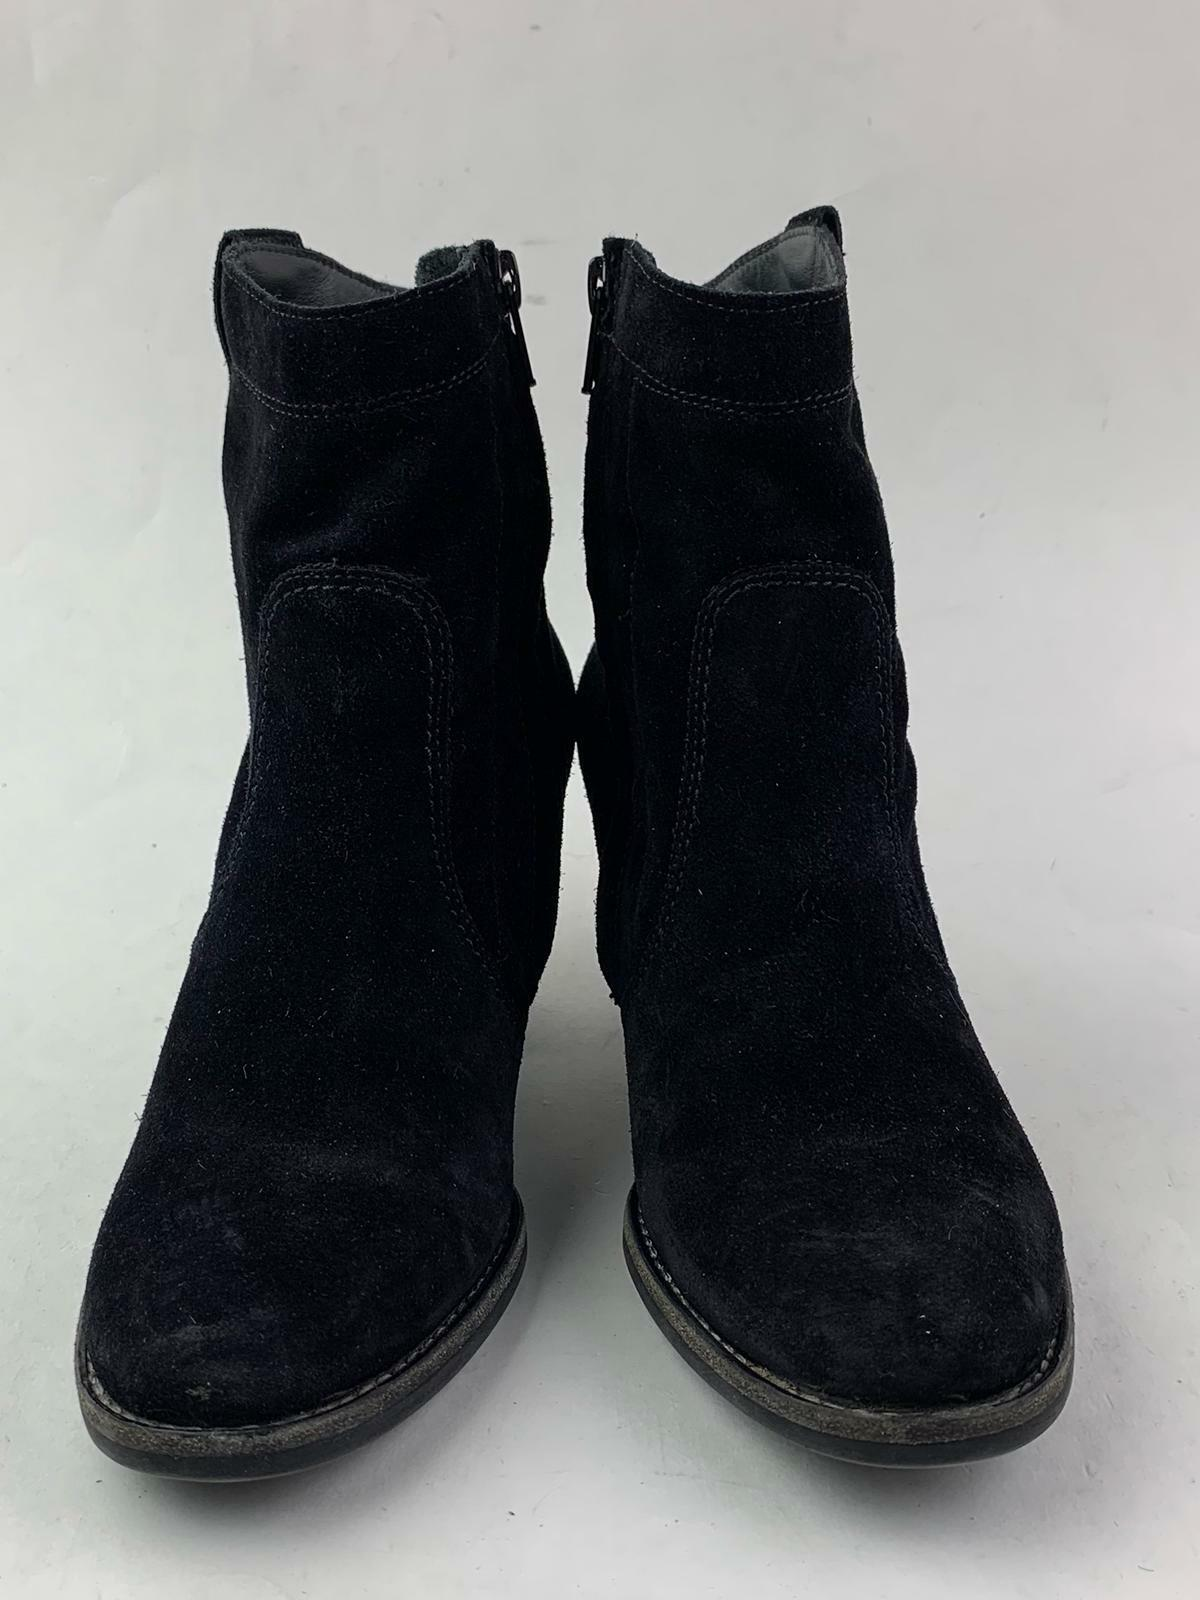 Paul Green Reese Suede Ankle Bootie 3.5 uk 6 US